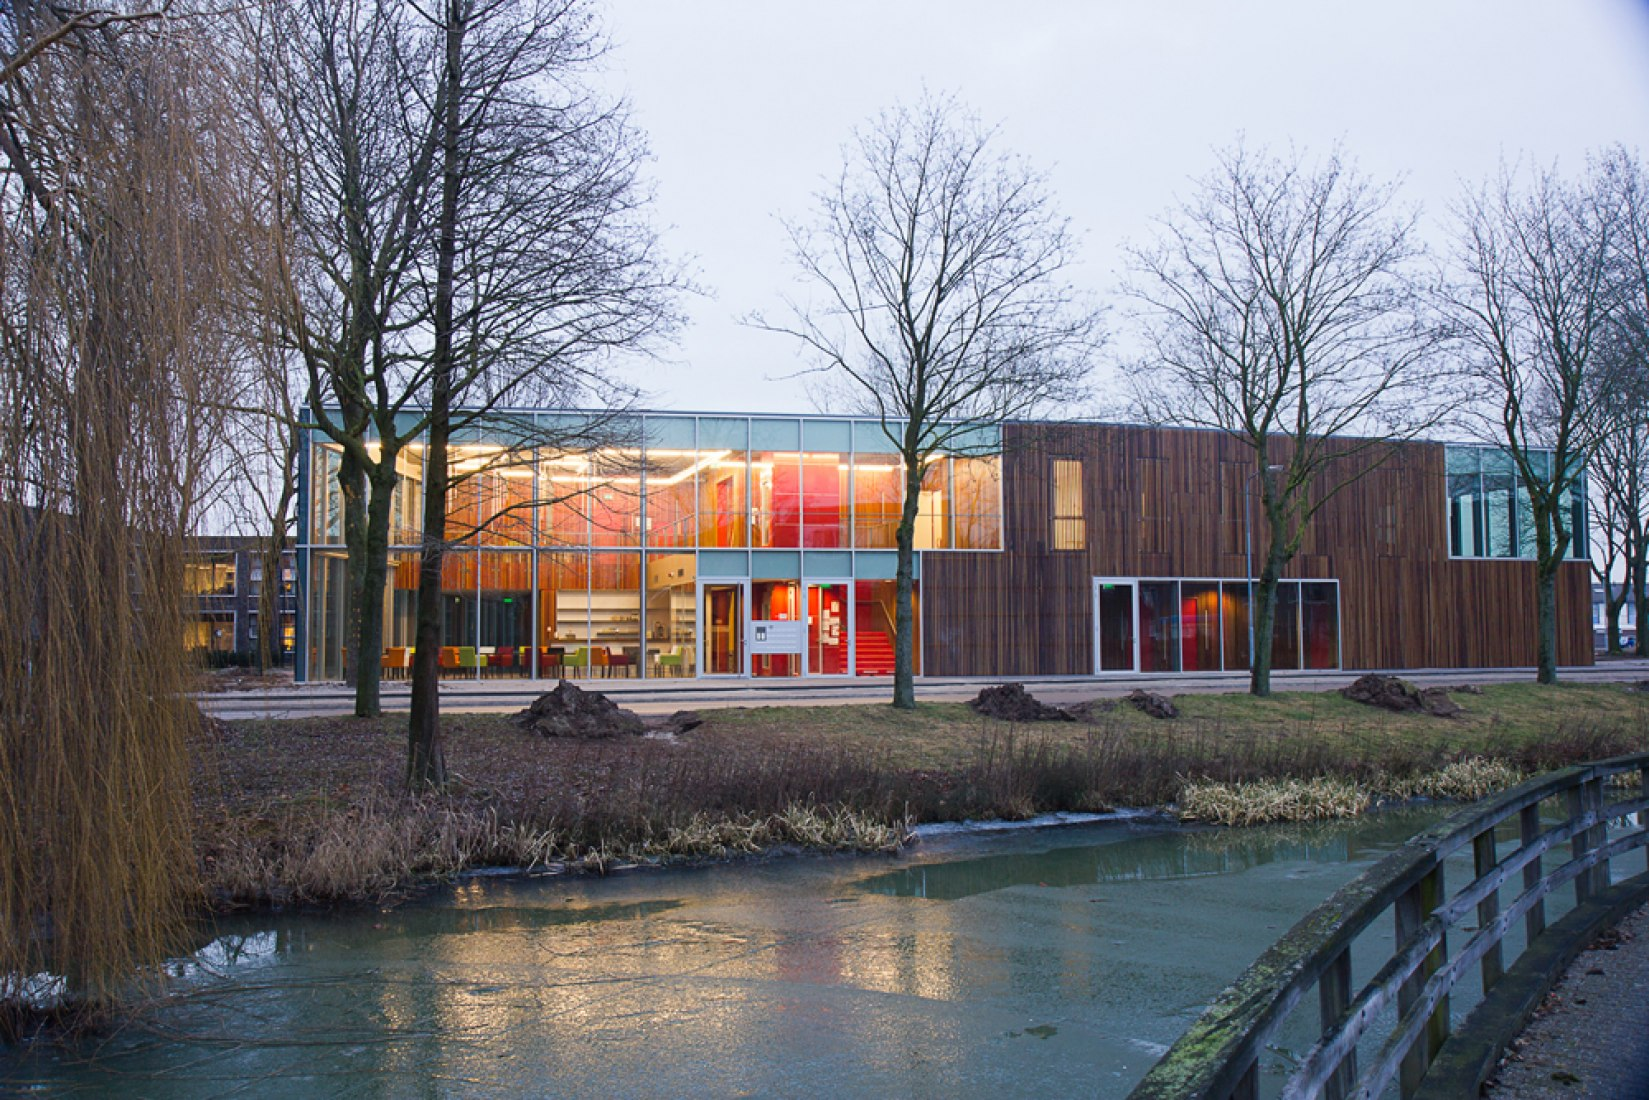 View across pond reigerpad. Huis van Droo Community Centre by JDWA.